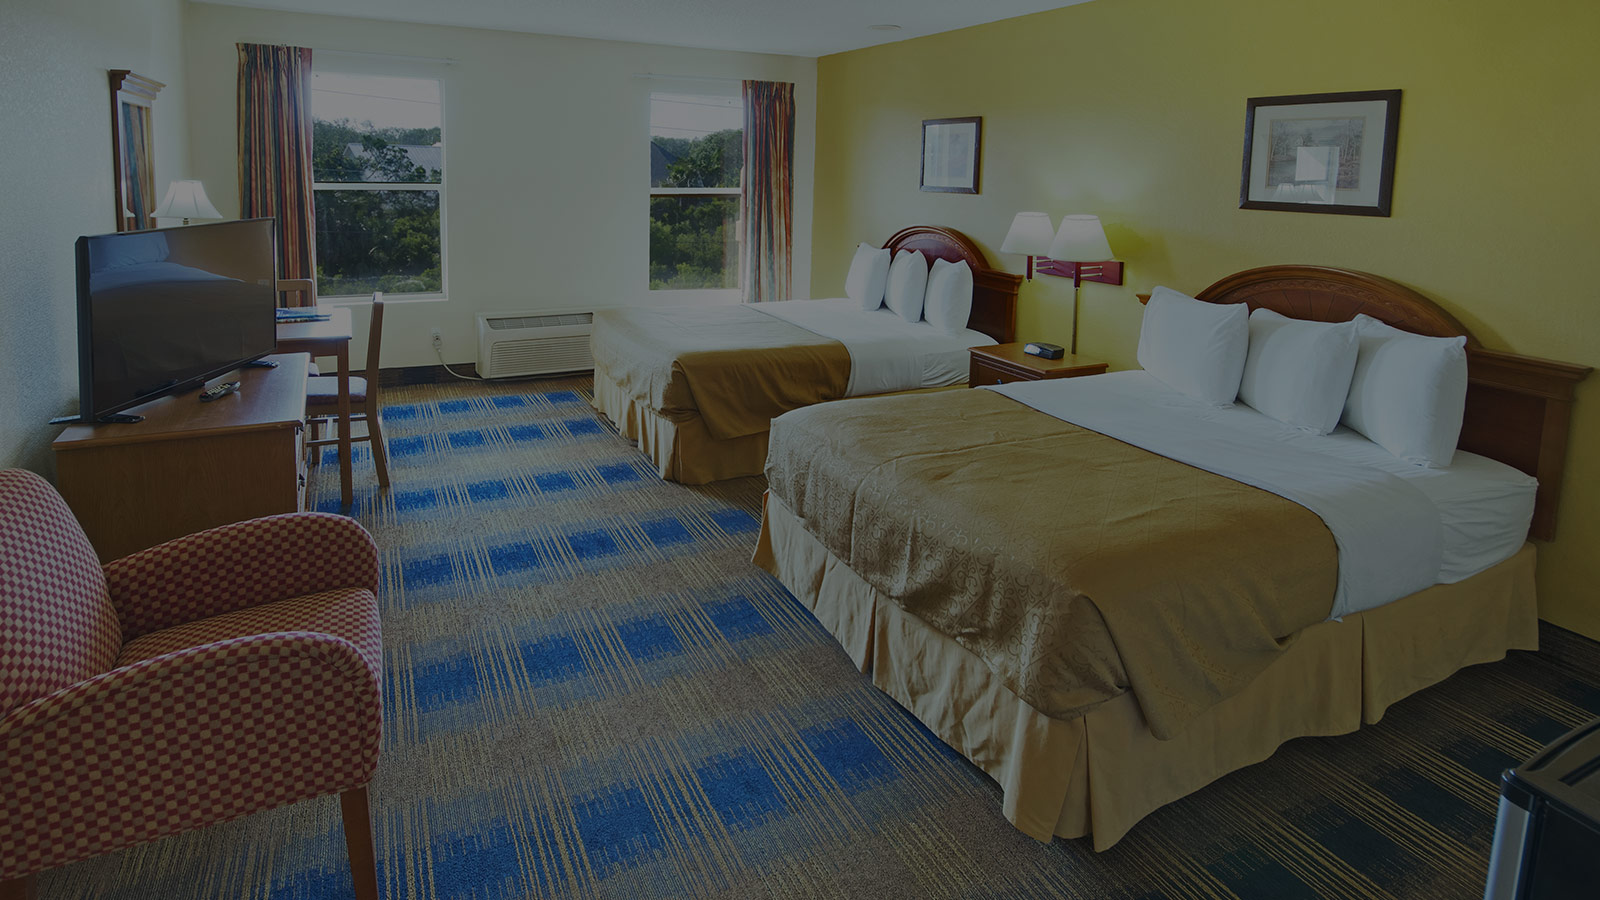 Family-friendly guest rooms in St. Augustine perfect for groups or family vacations